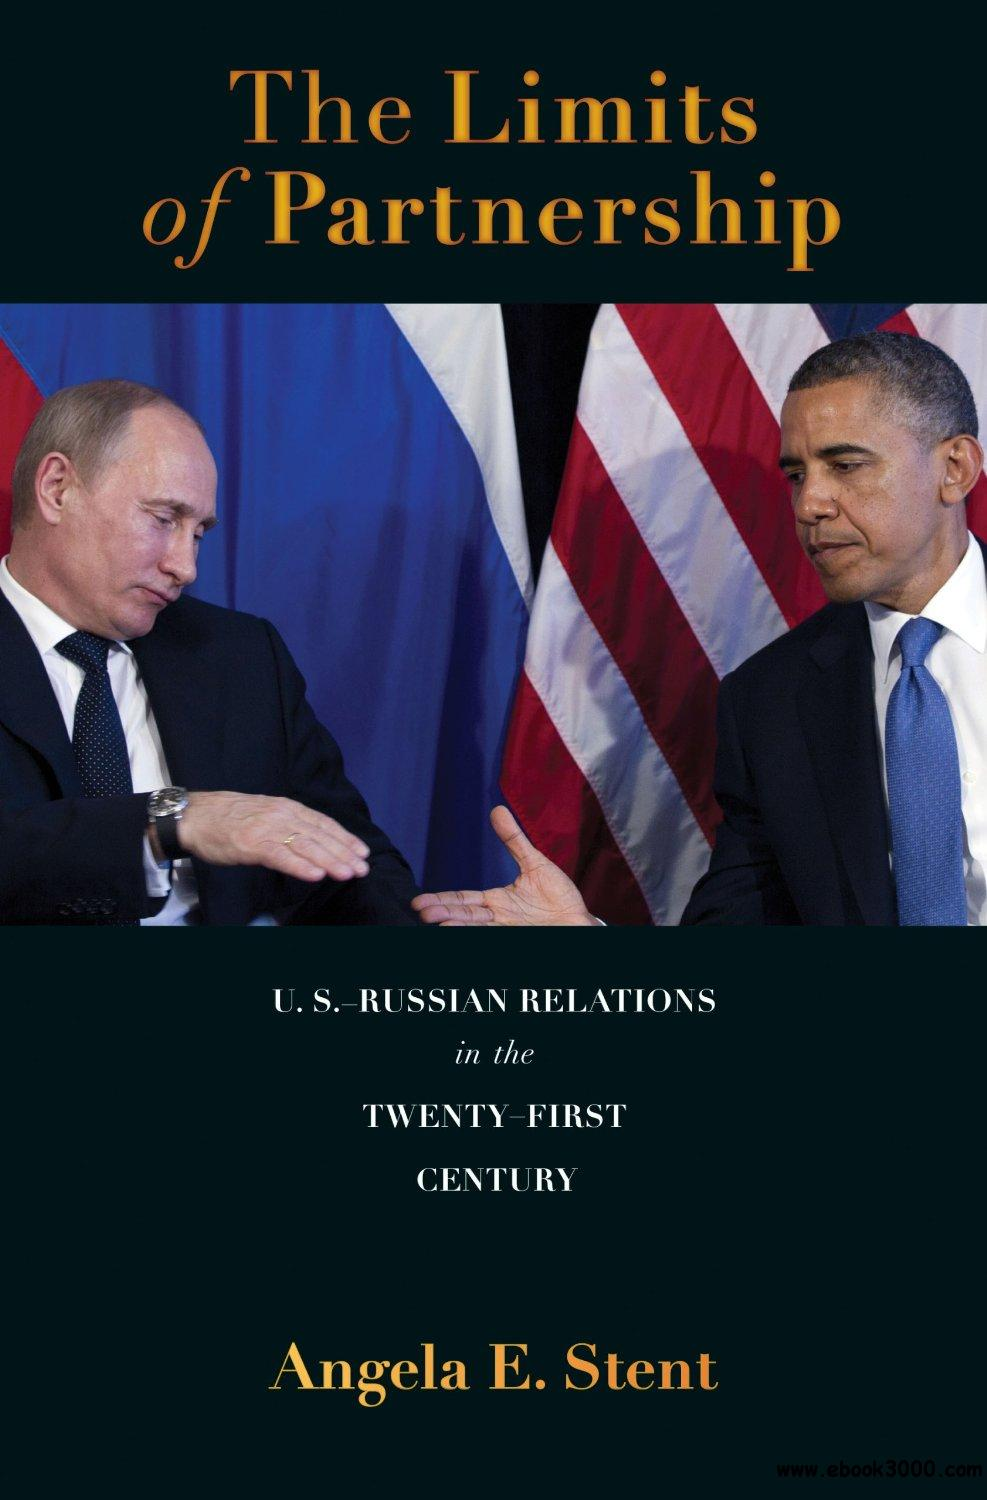 The Limits of Partnership: U.S.-Russian Relations in the Twenty-First Century free download